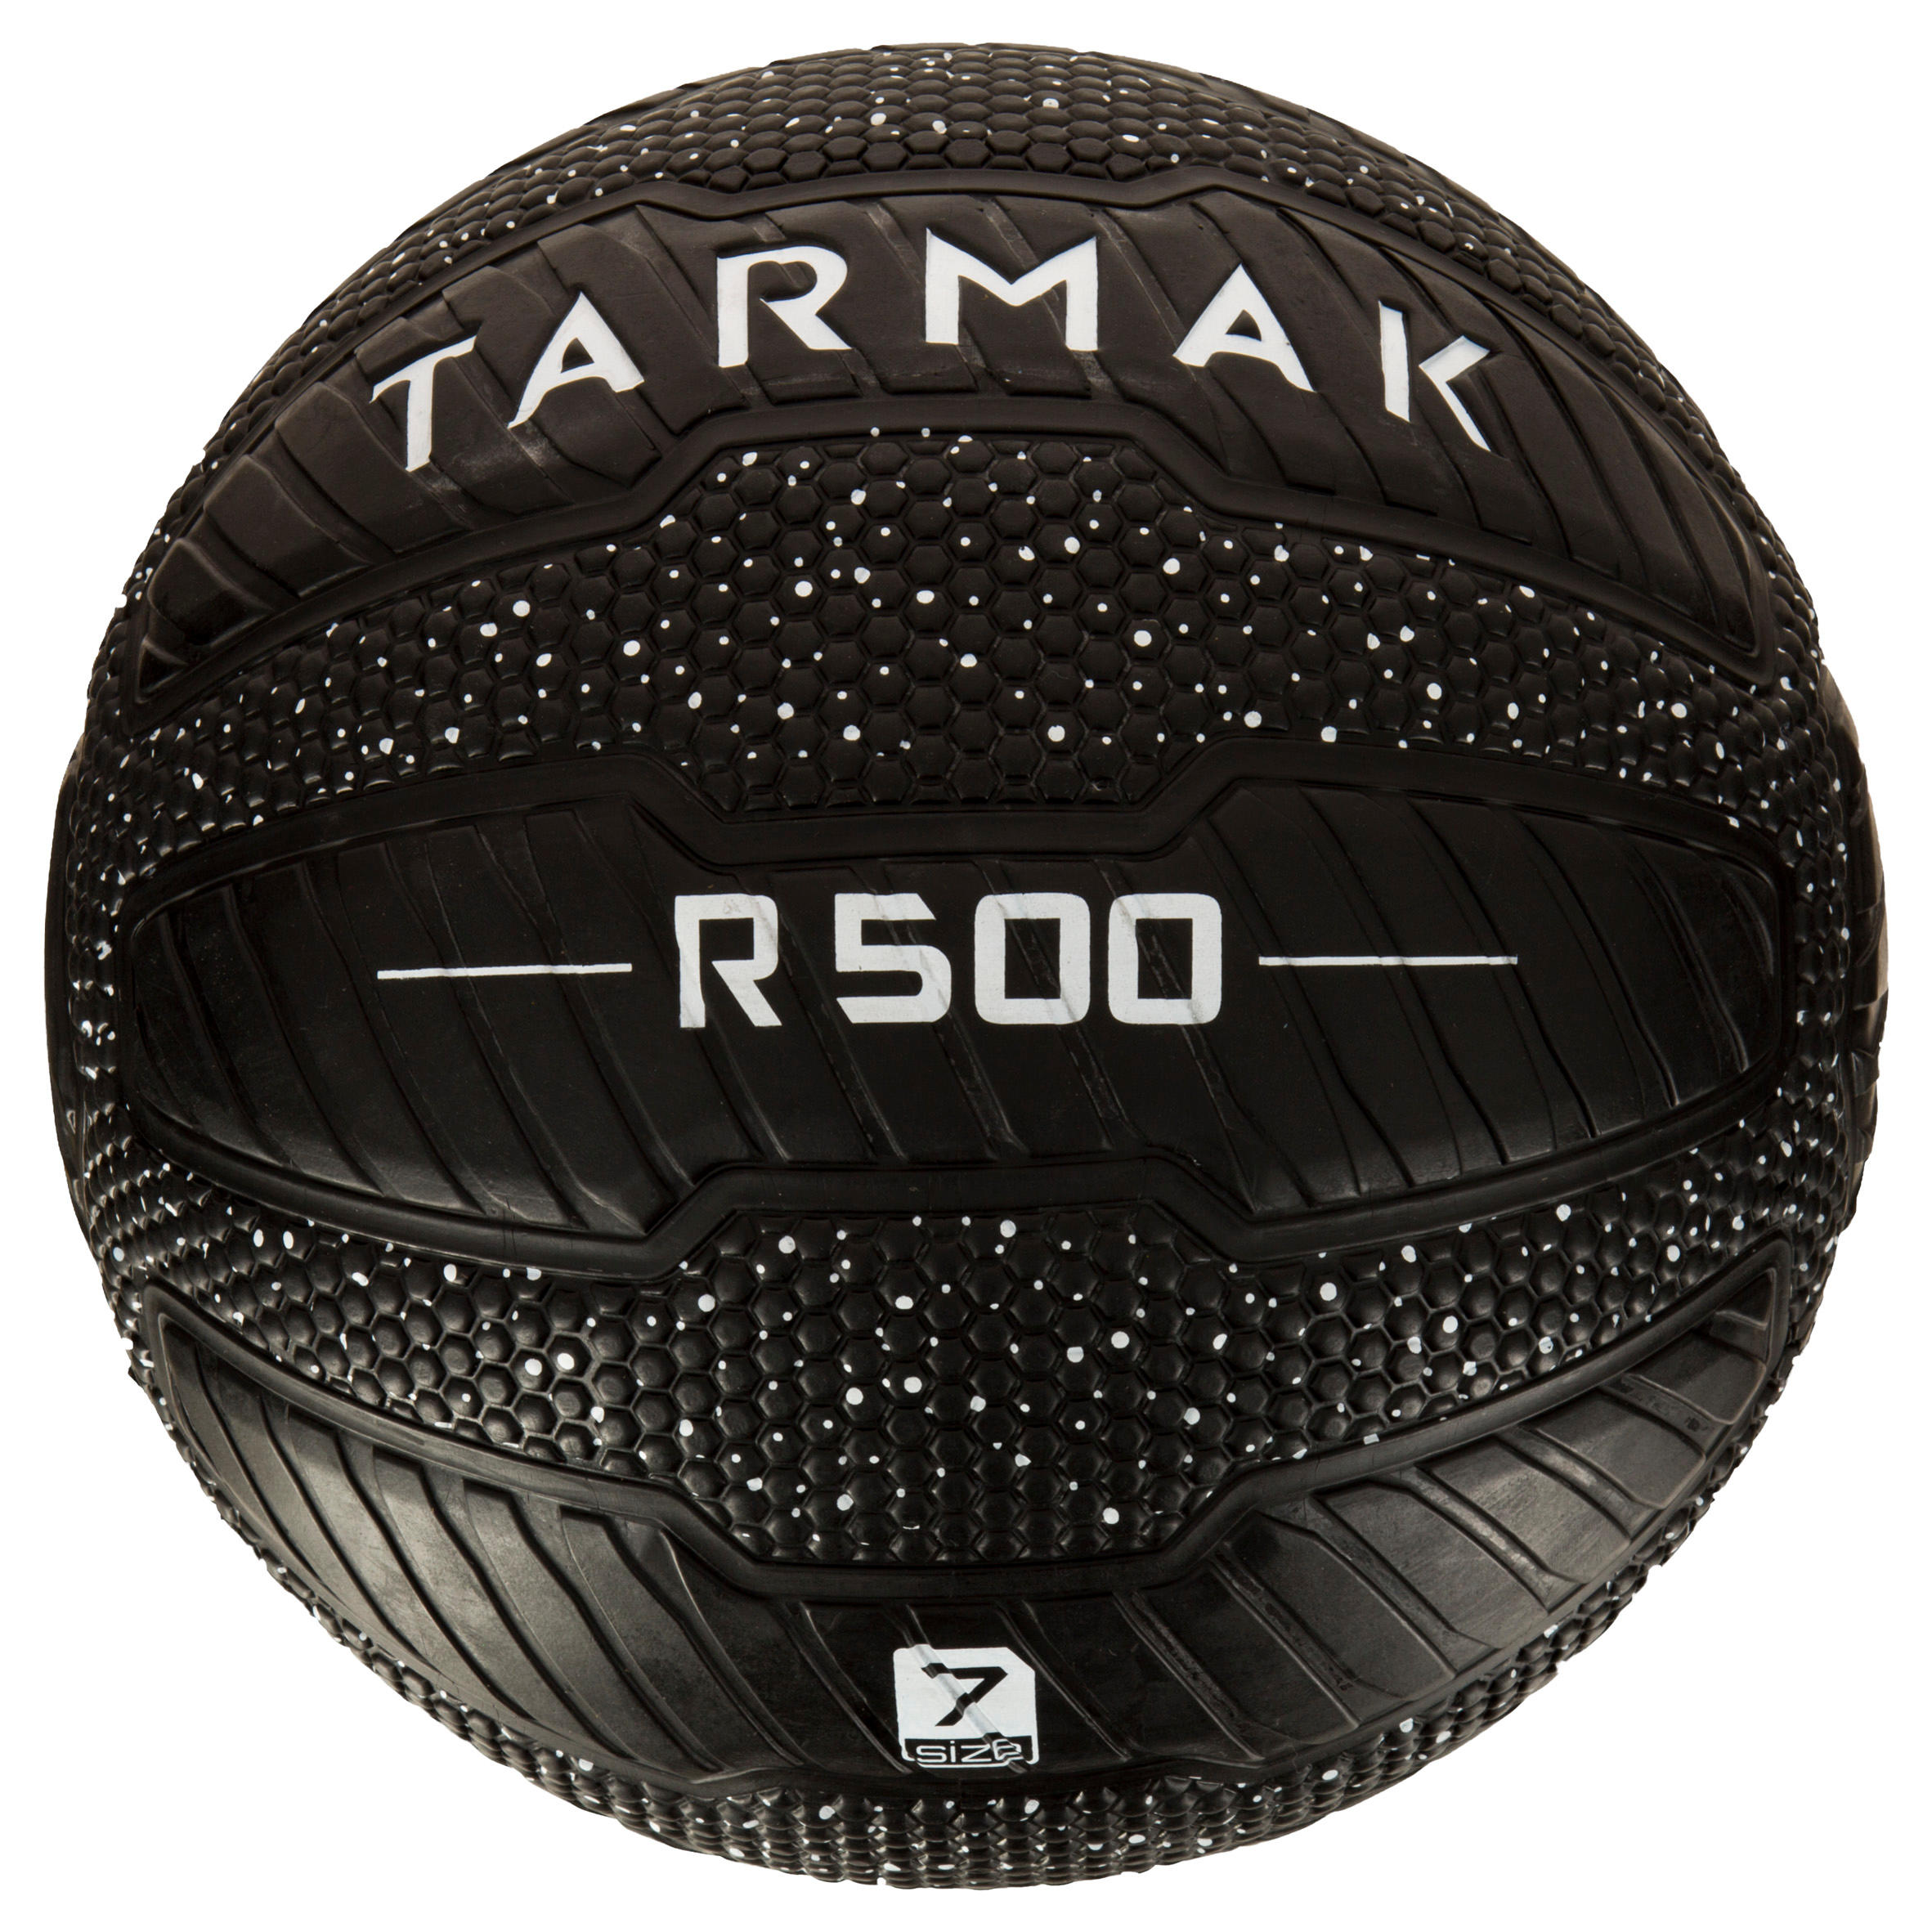 R500 Adult Size 7 Puncture-Proof and Grippy Basketball - White/Black.